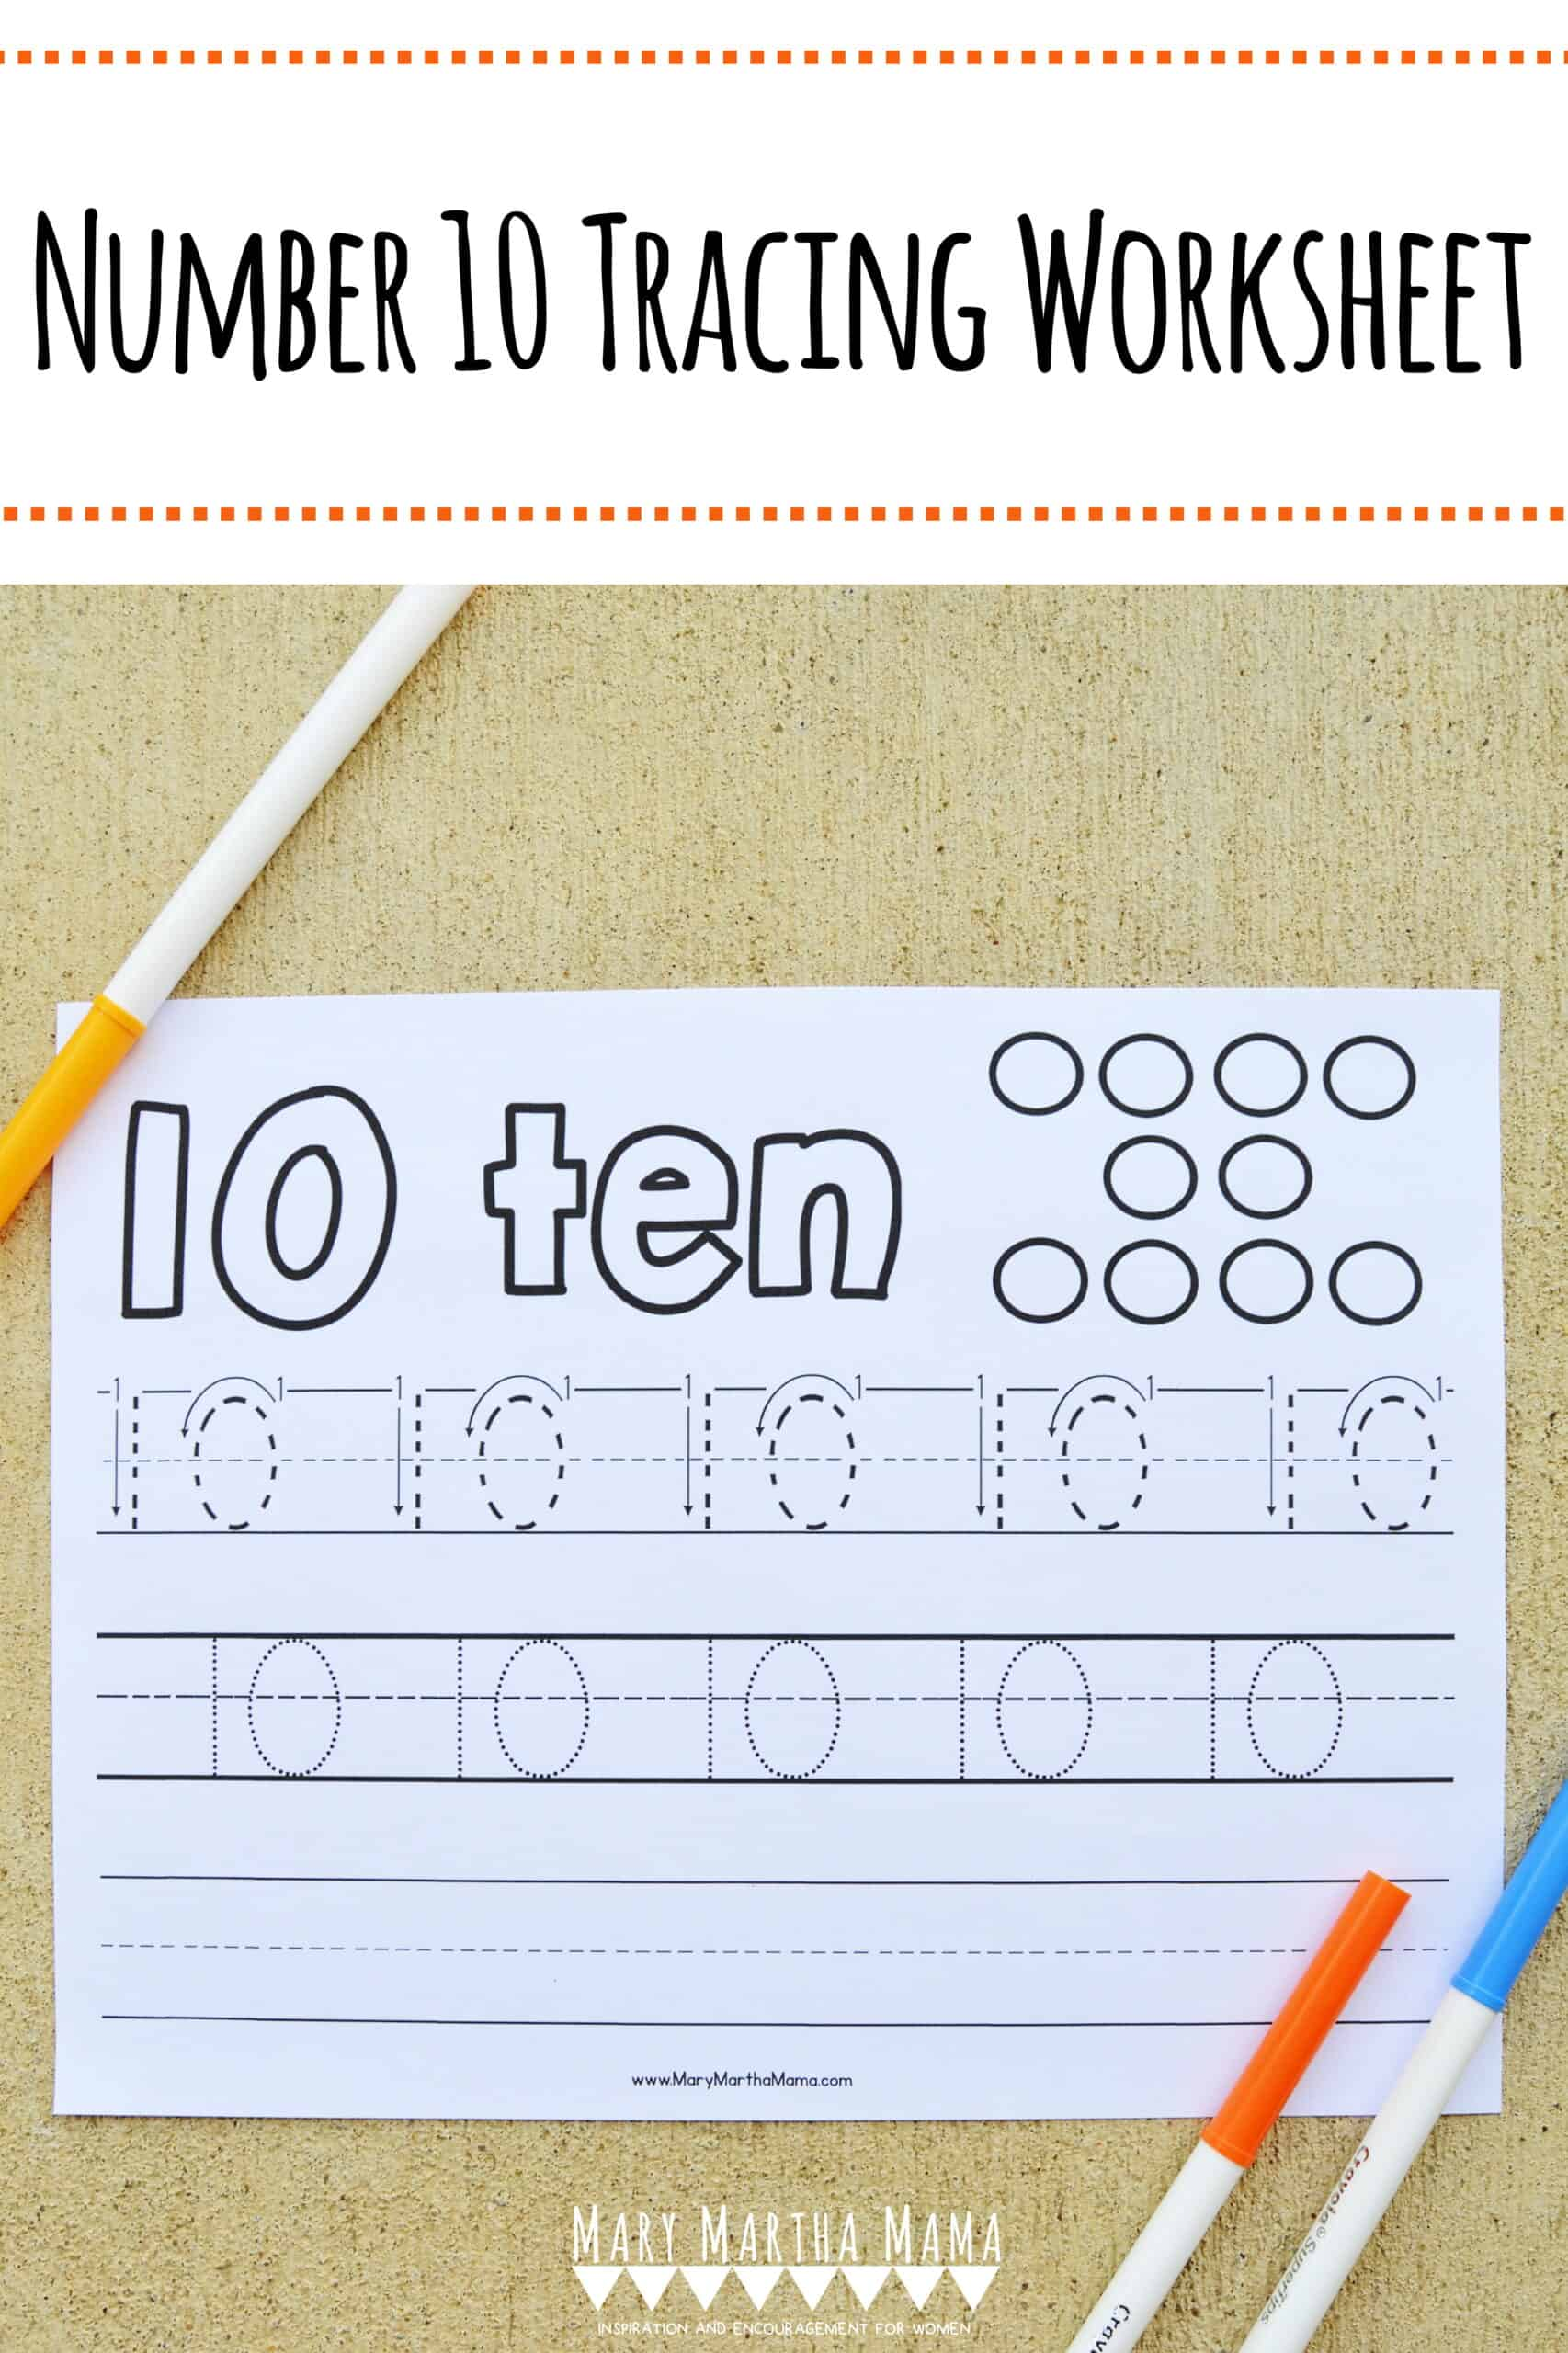 hight resolution of Number 10 Tracing Worksheet – Mary Martha Mama